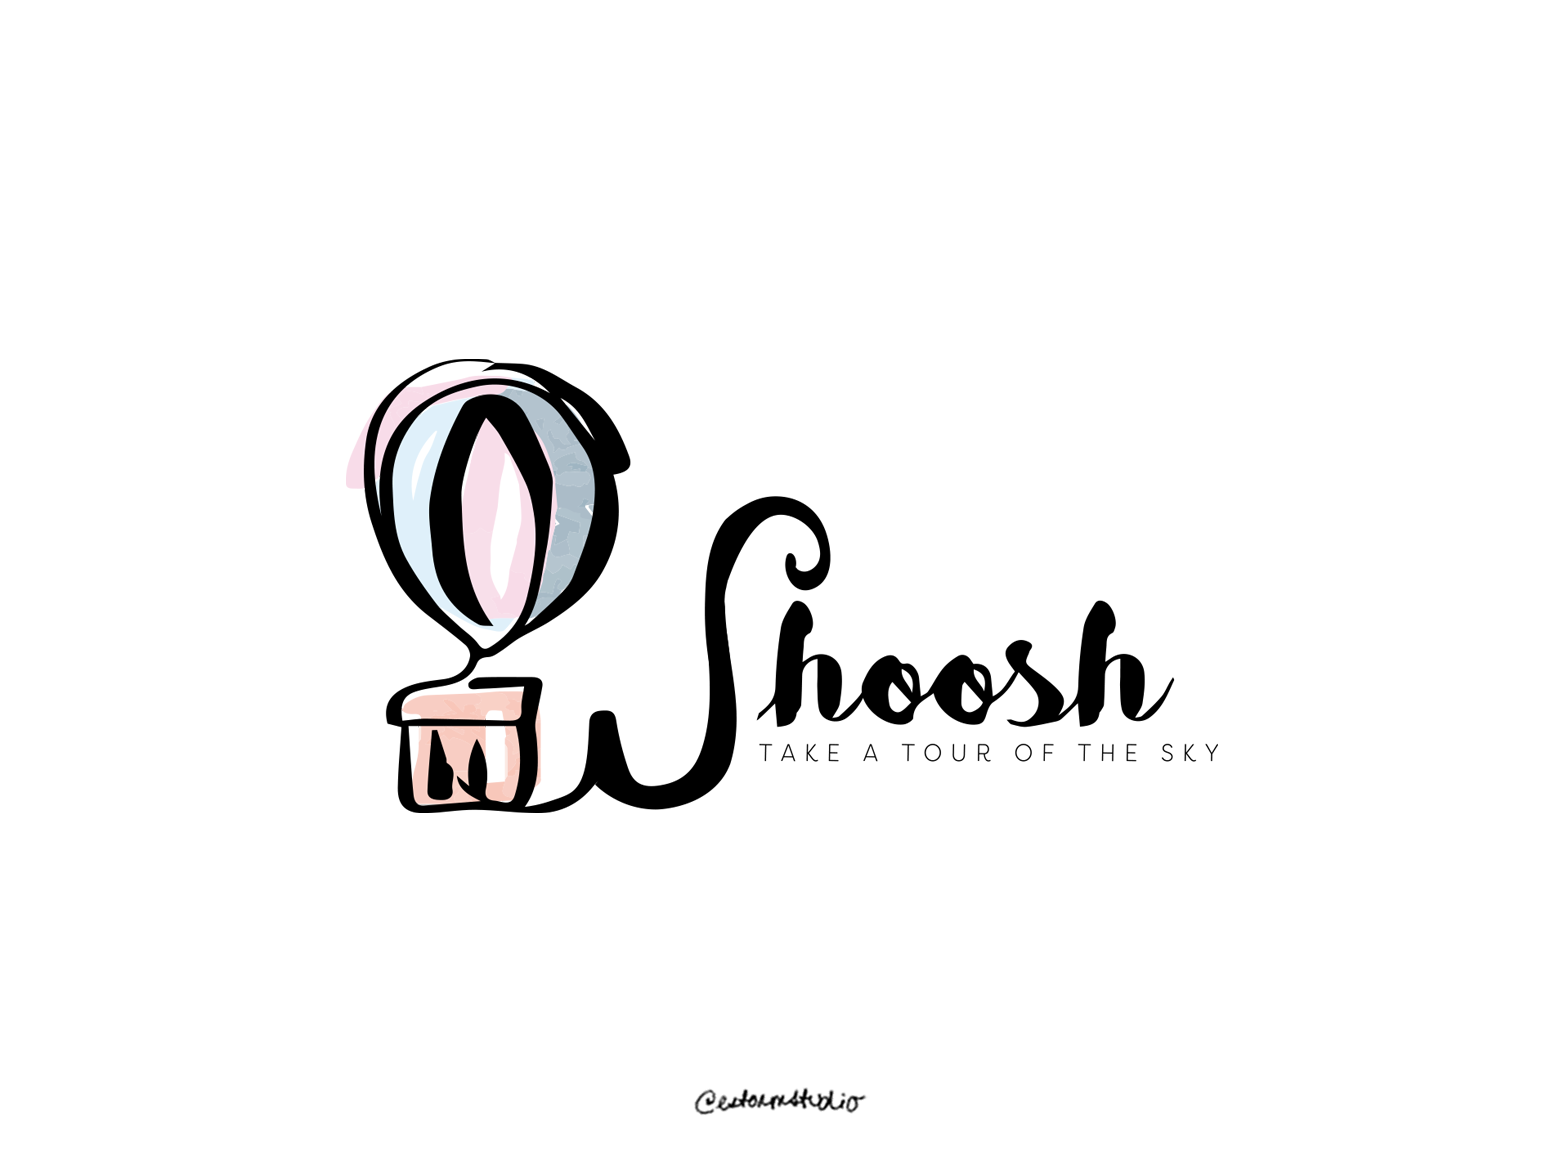 02 / Whoosh daily logo design daily logo challenge typography vector campaign logo advertising website branding whimsical minimal icon watercolor illustration design